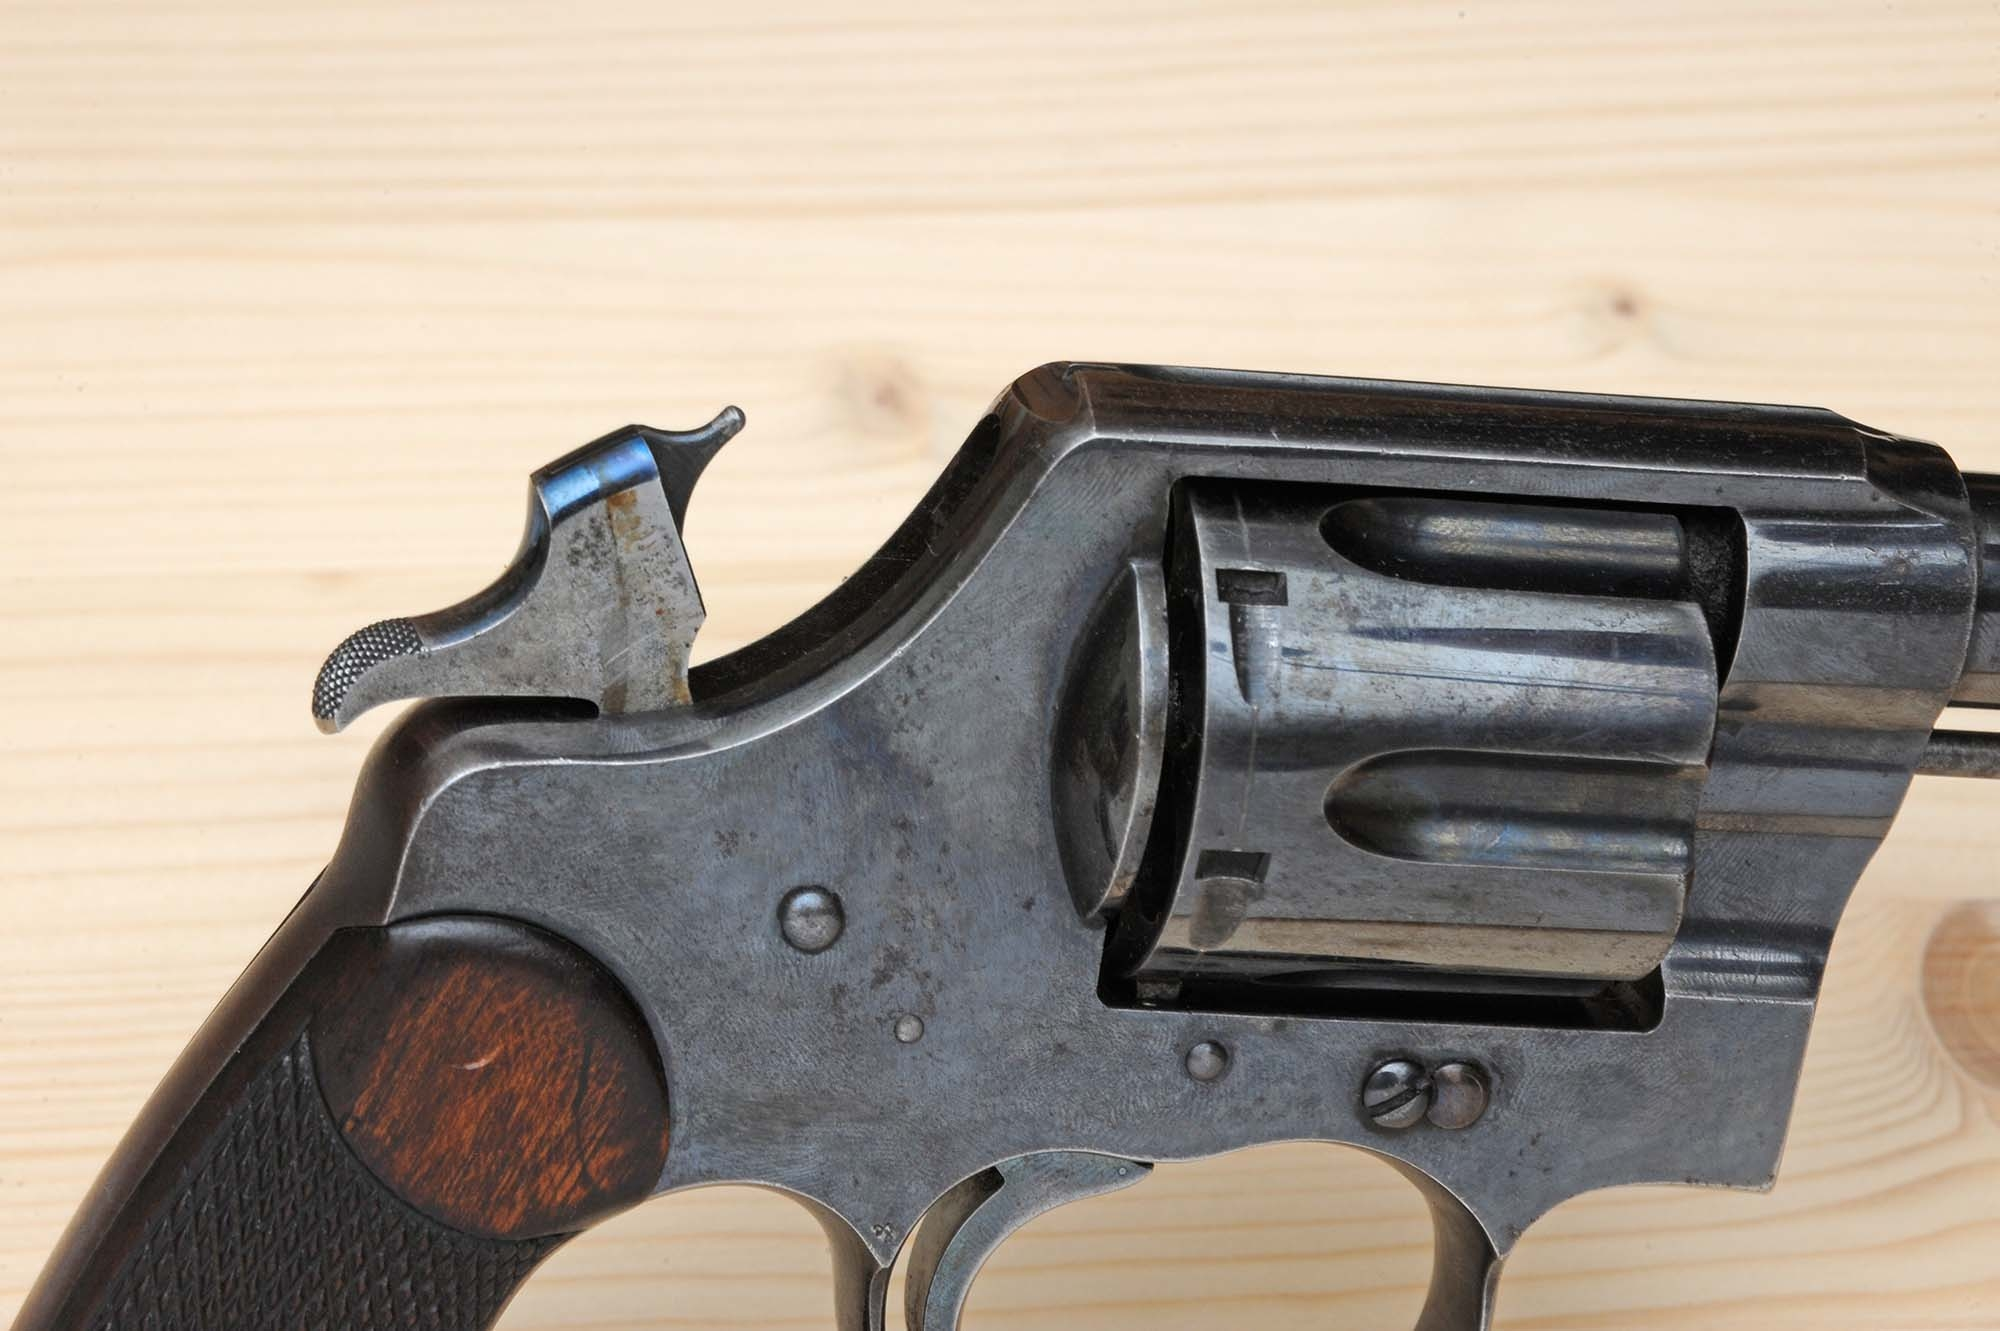 Trigger of the  Colt New Service revolver